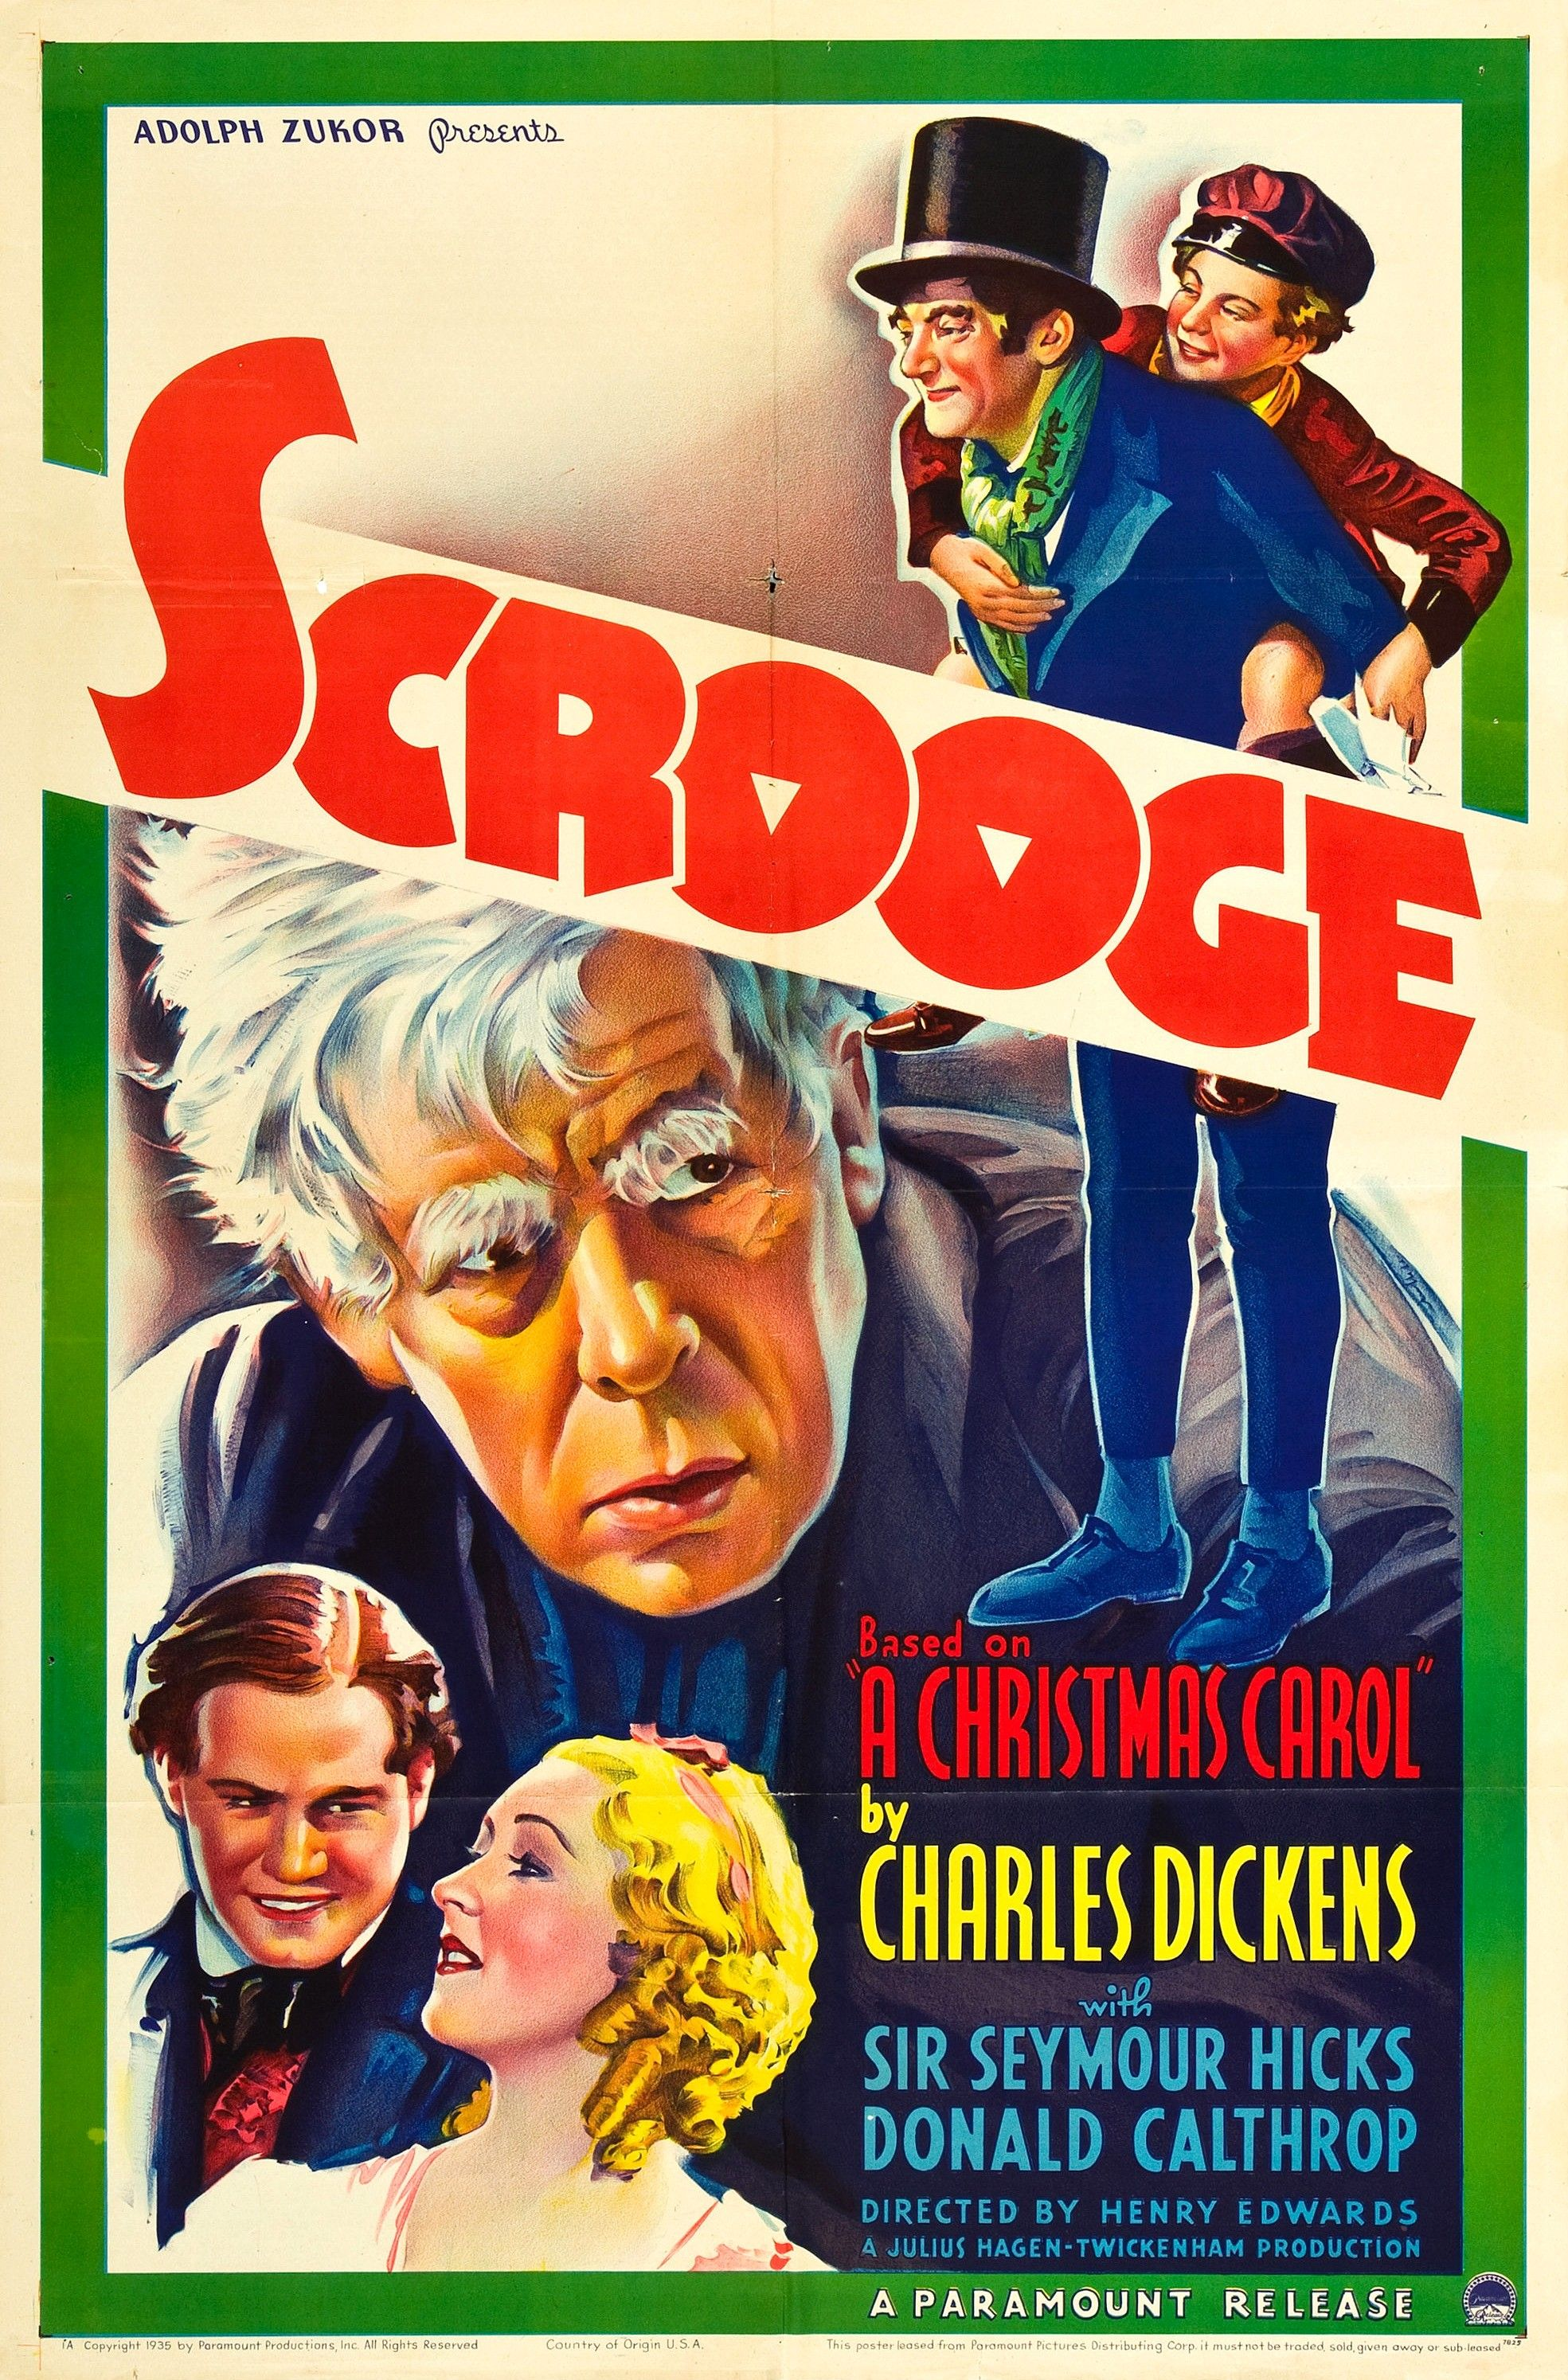 Pin By Adam Benoit On Vintage Movie Posters They Don T Make Em Like That Anymore Scrooge Movie Full Movies Online Free Movie Posters